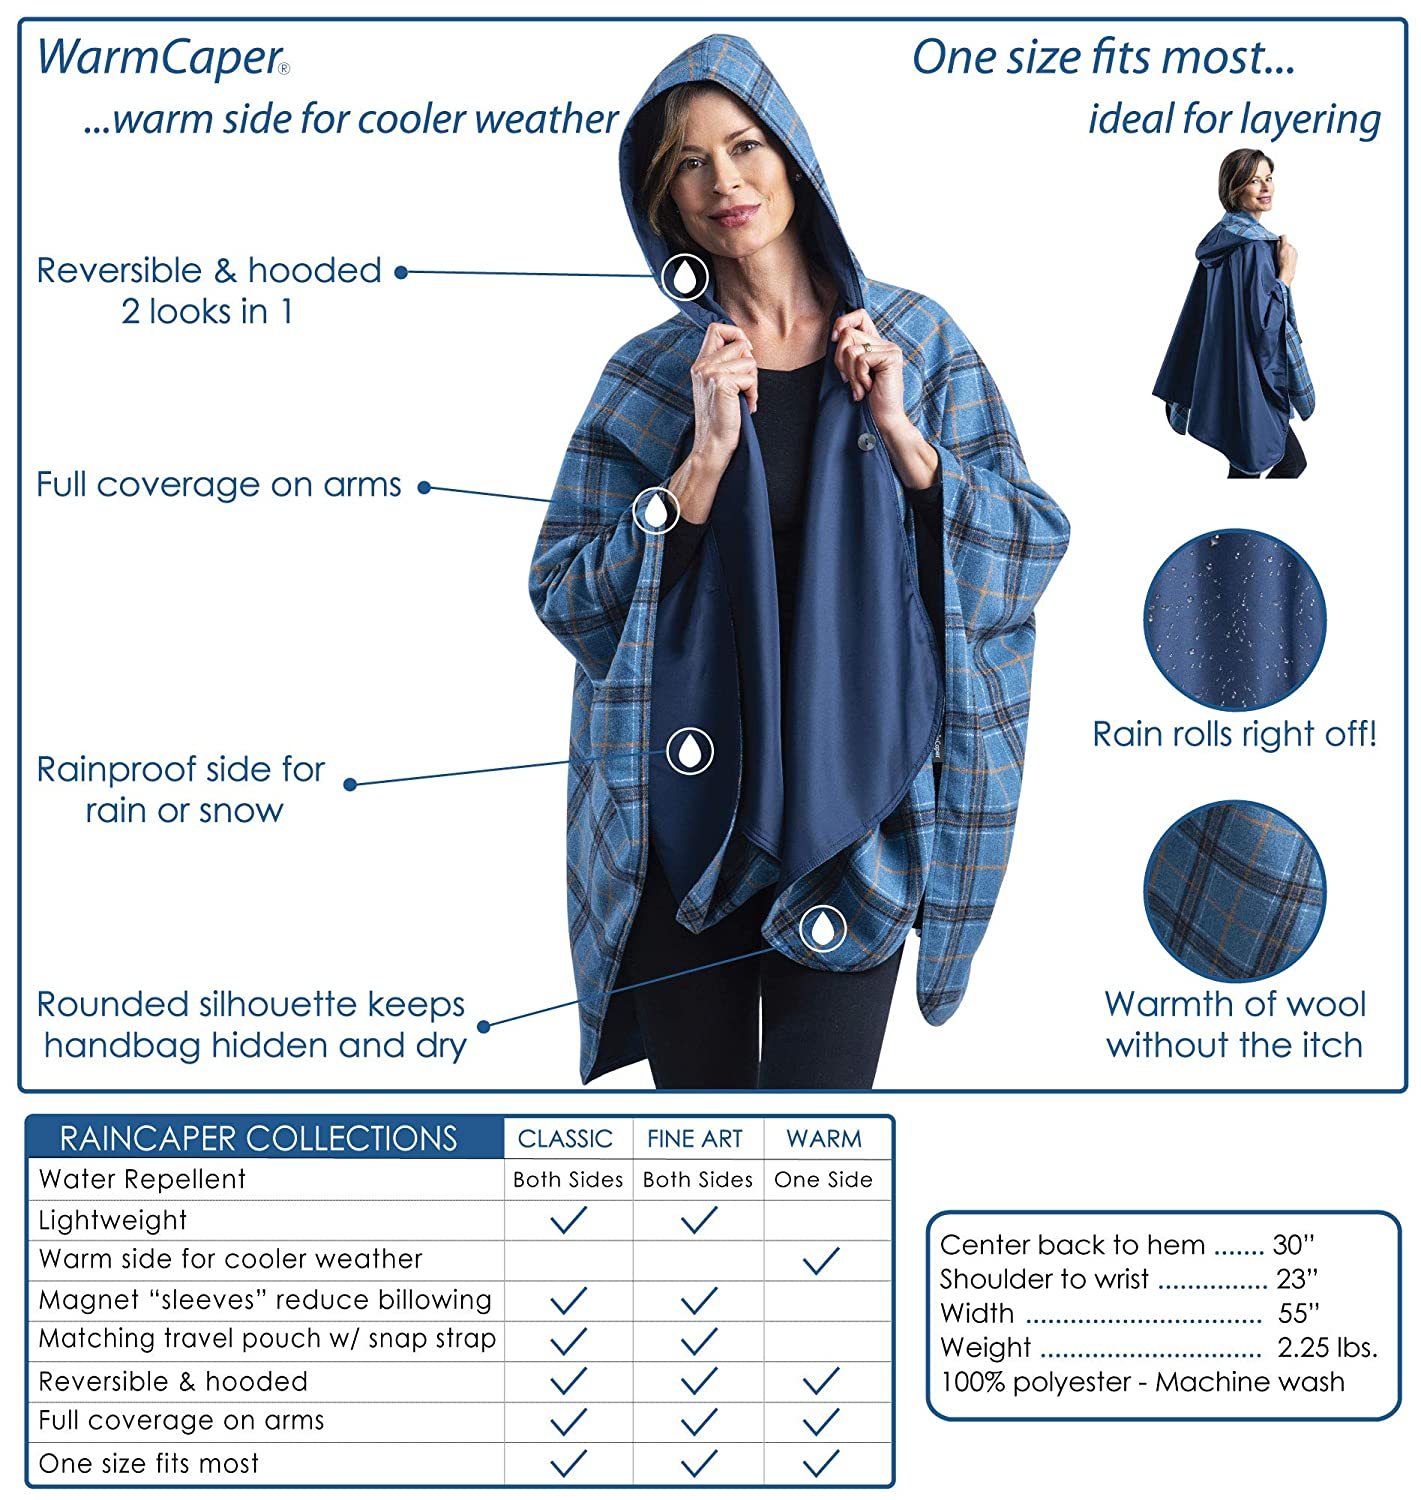 117d7b81c WarmCaper - Warm Rain Poncho for Women with Hood - Soft & Rainproof (Choose  Your Color)